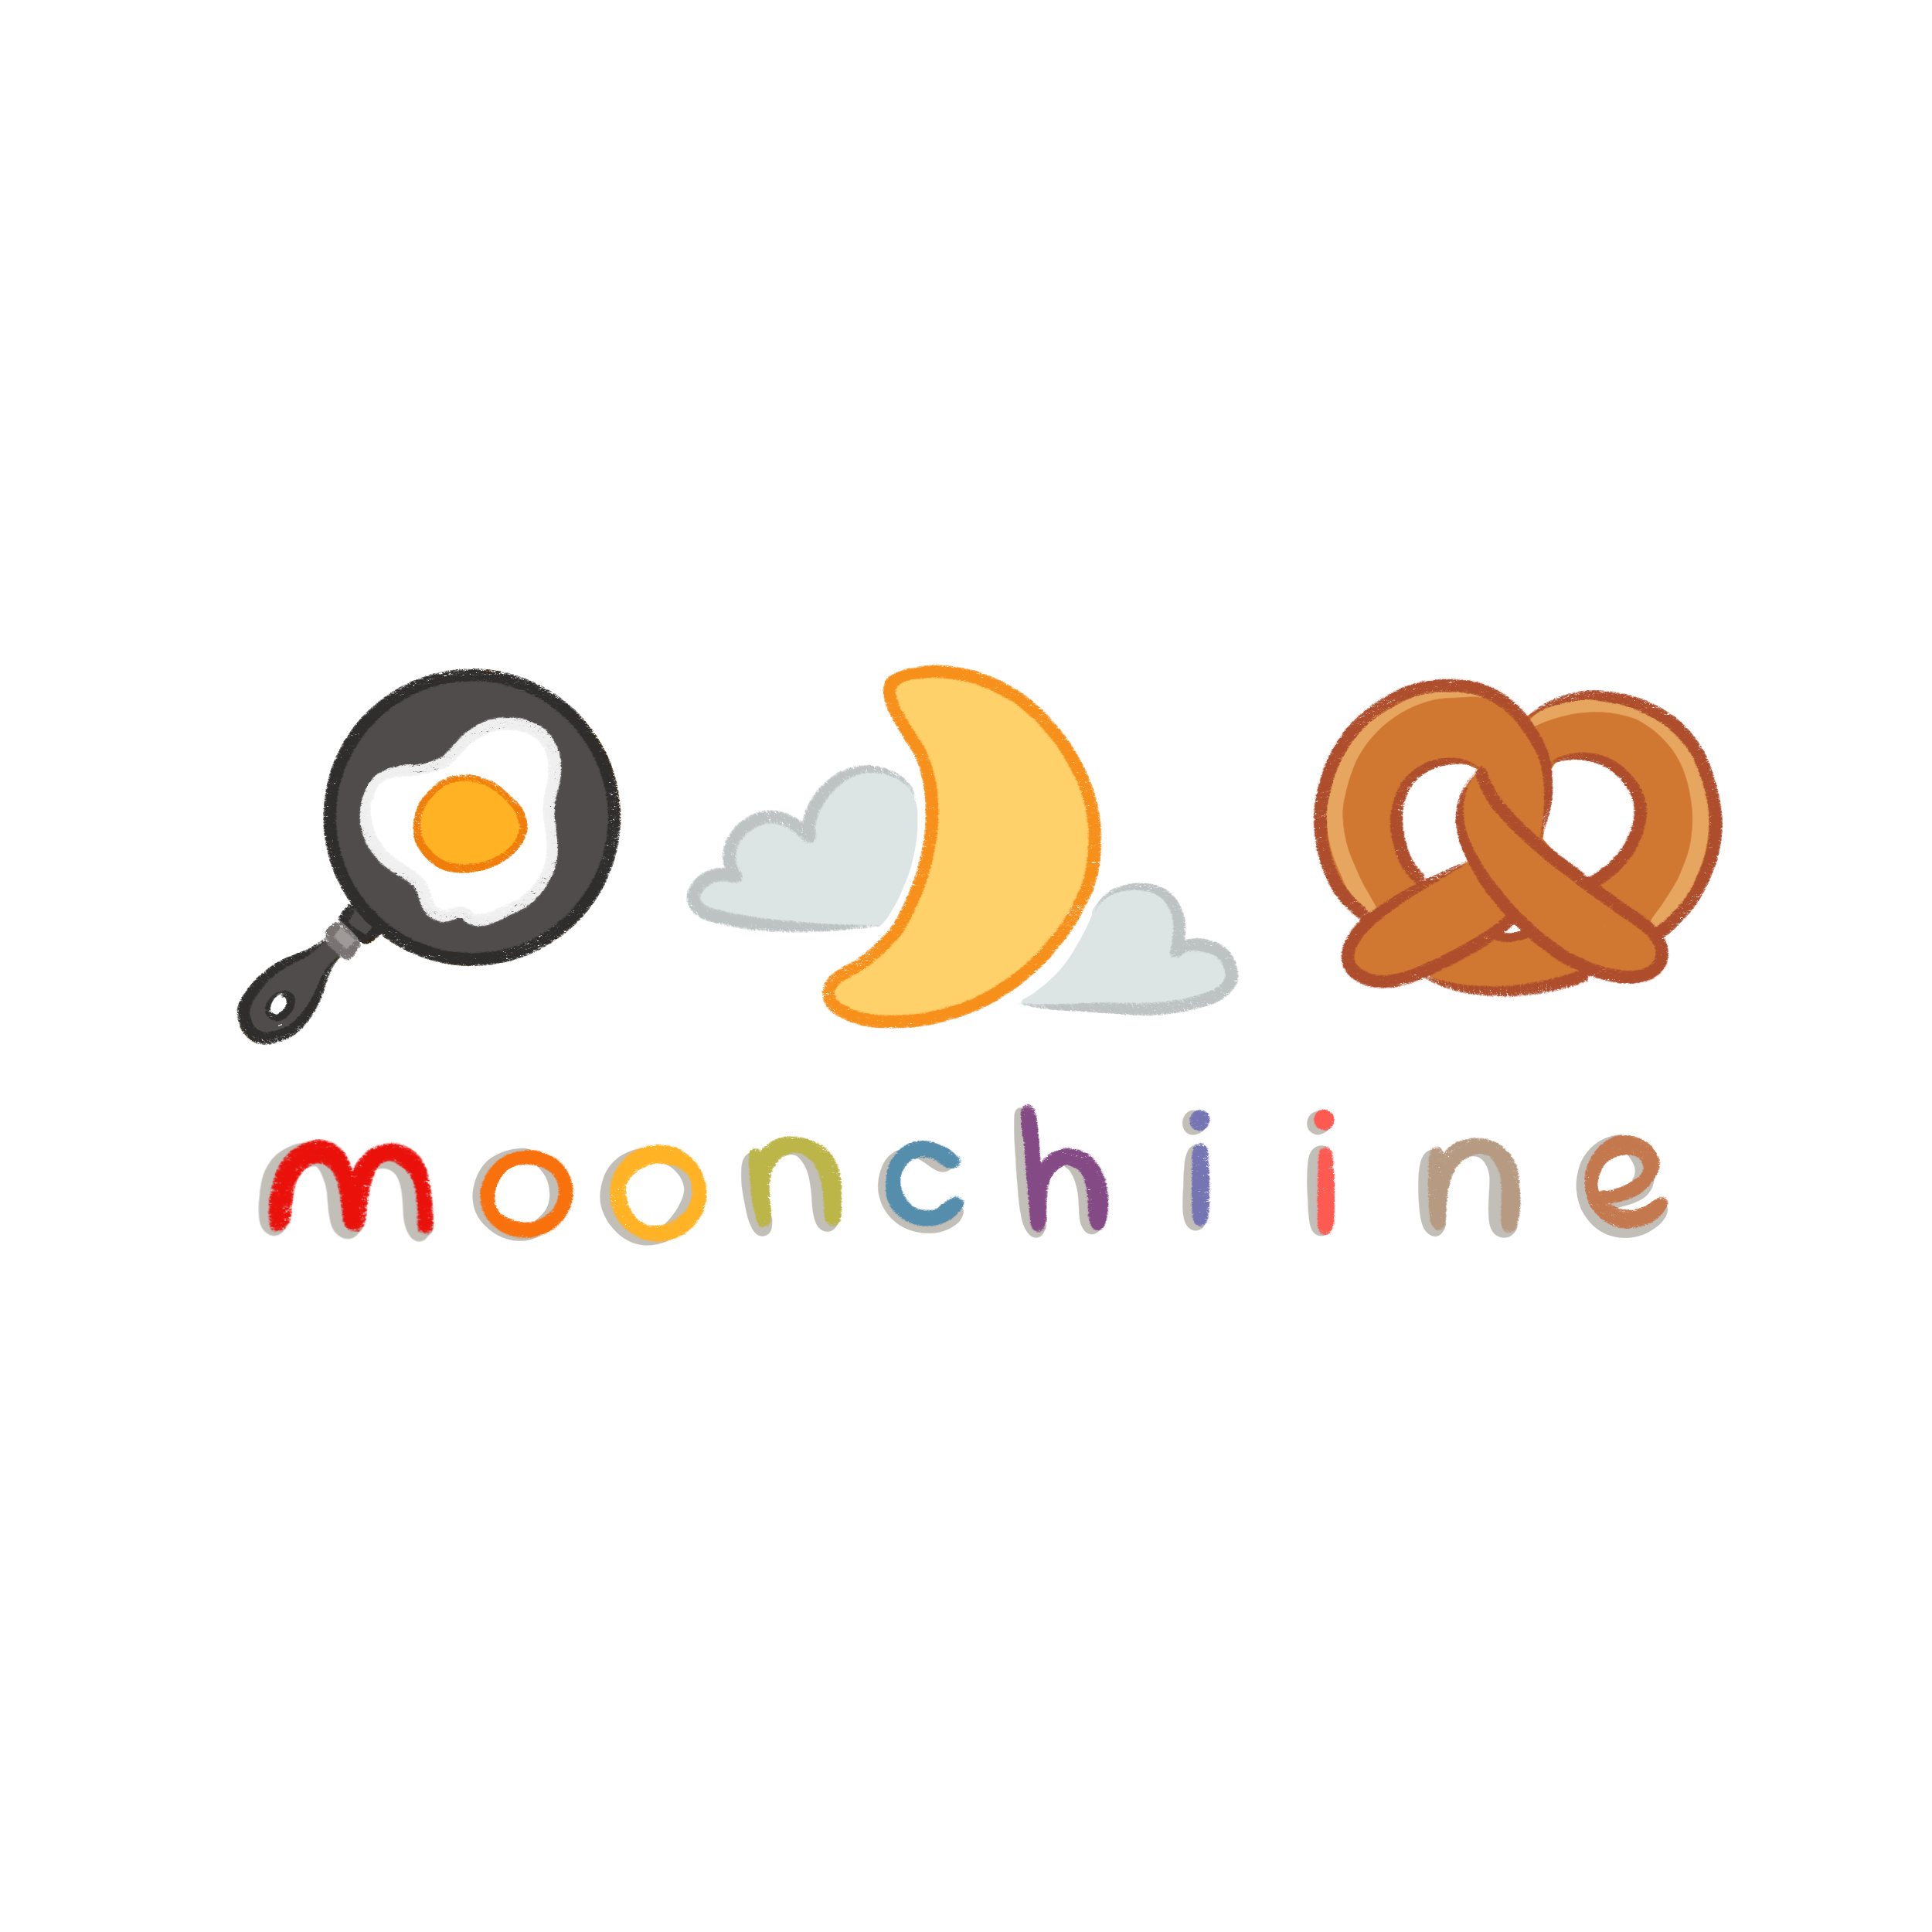 [Moonchiine] Day6 Ke Sticker Sheet